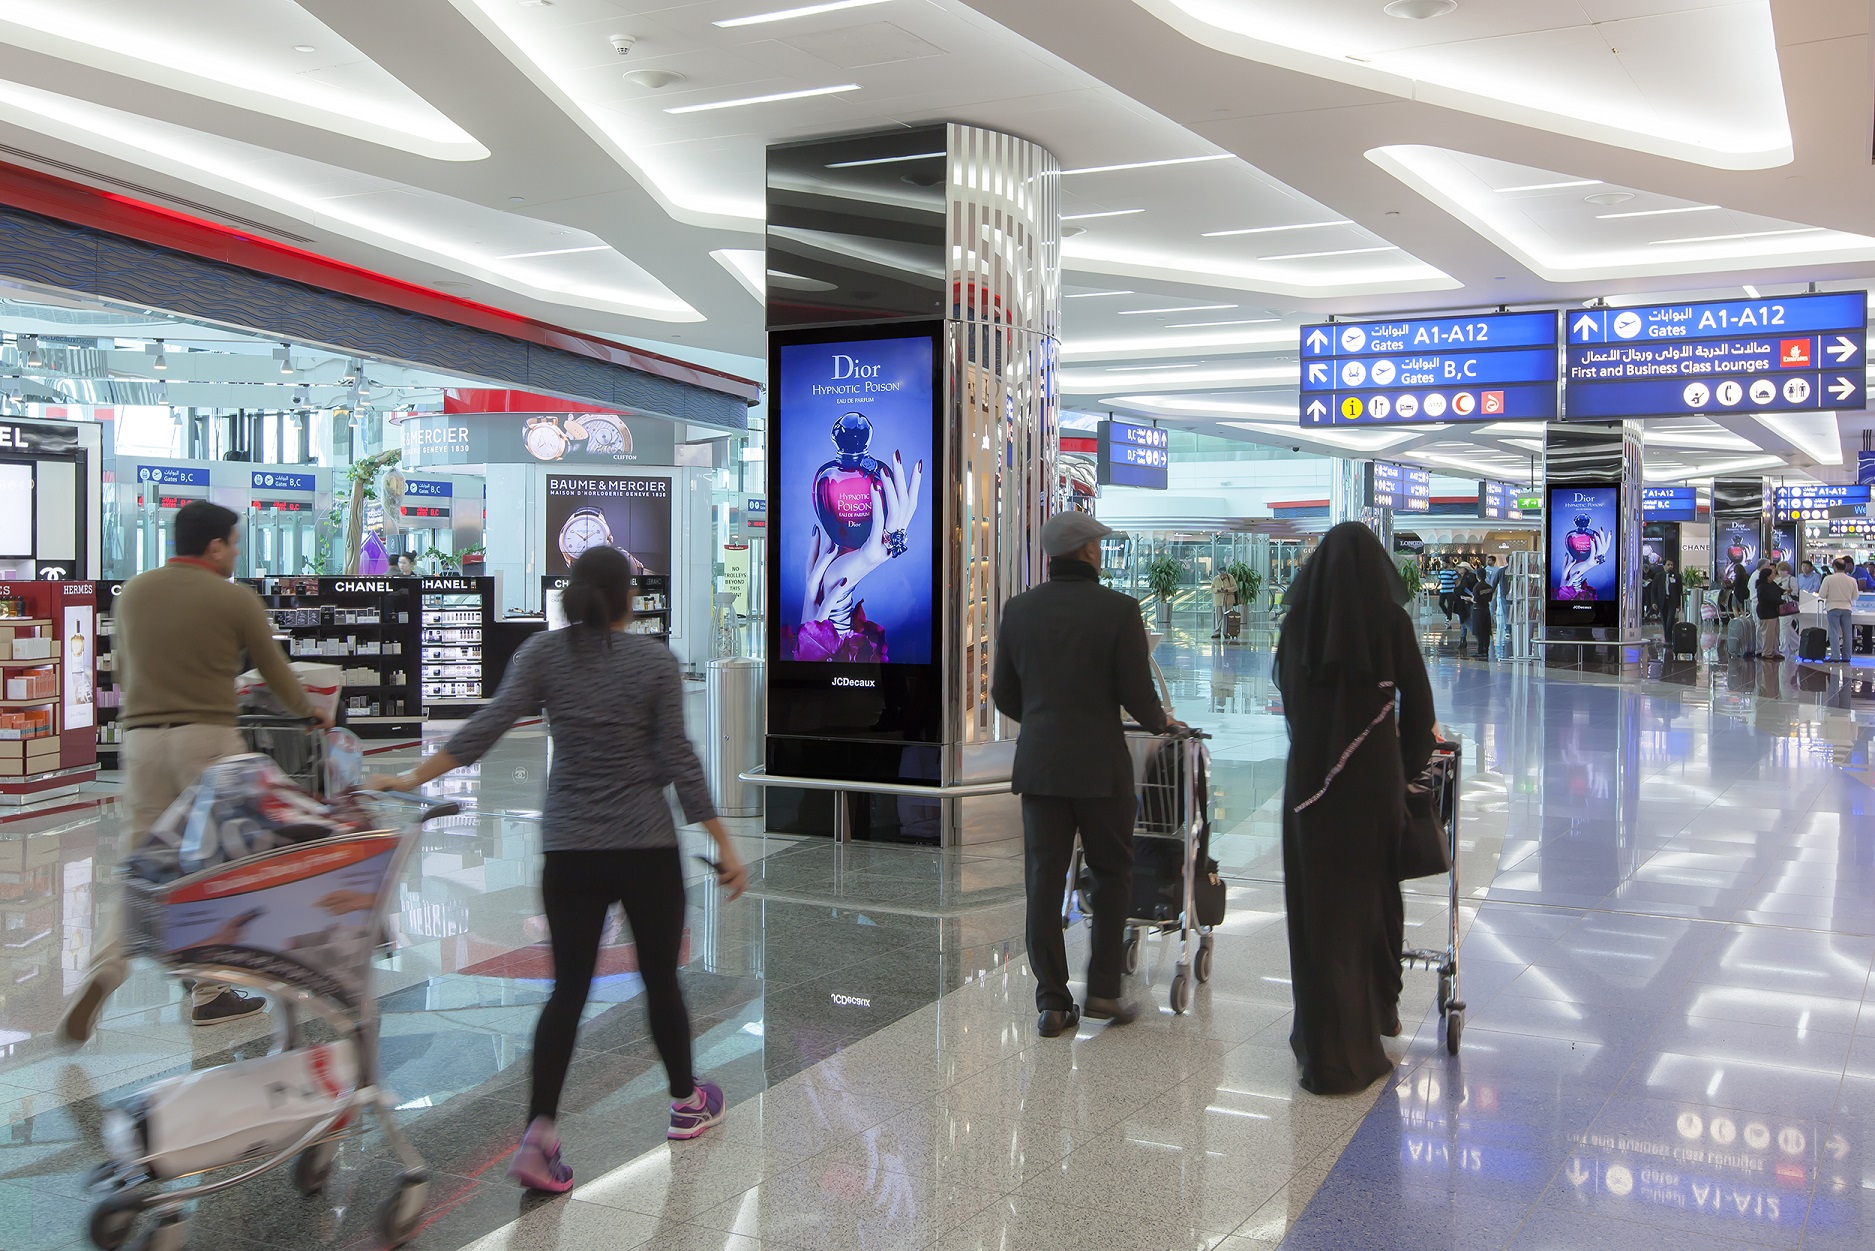 jcdecaux-unveils-its-first-digital-ivision-airport-network-at-dubai-international